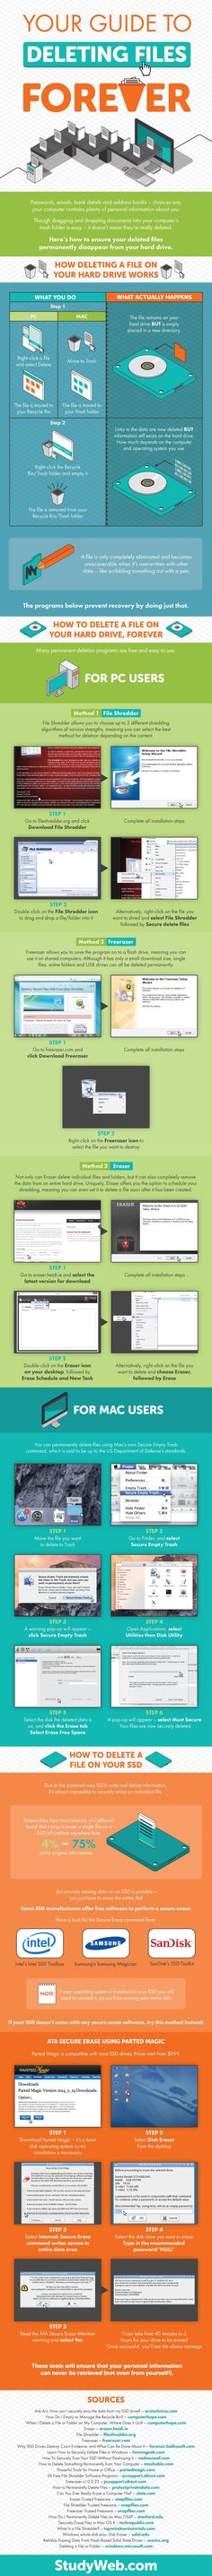 Your Guide to Deleting Files Forever - infographic Computer Hard Drive Computer Help, Computer Technology, Computer Programming, Computer Science, Computer Tips, Medical Technology, Computer Projects, Computer Basics, Arduino Projects